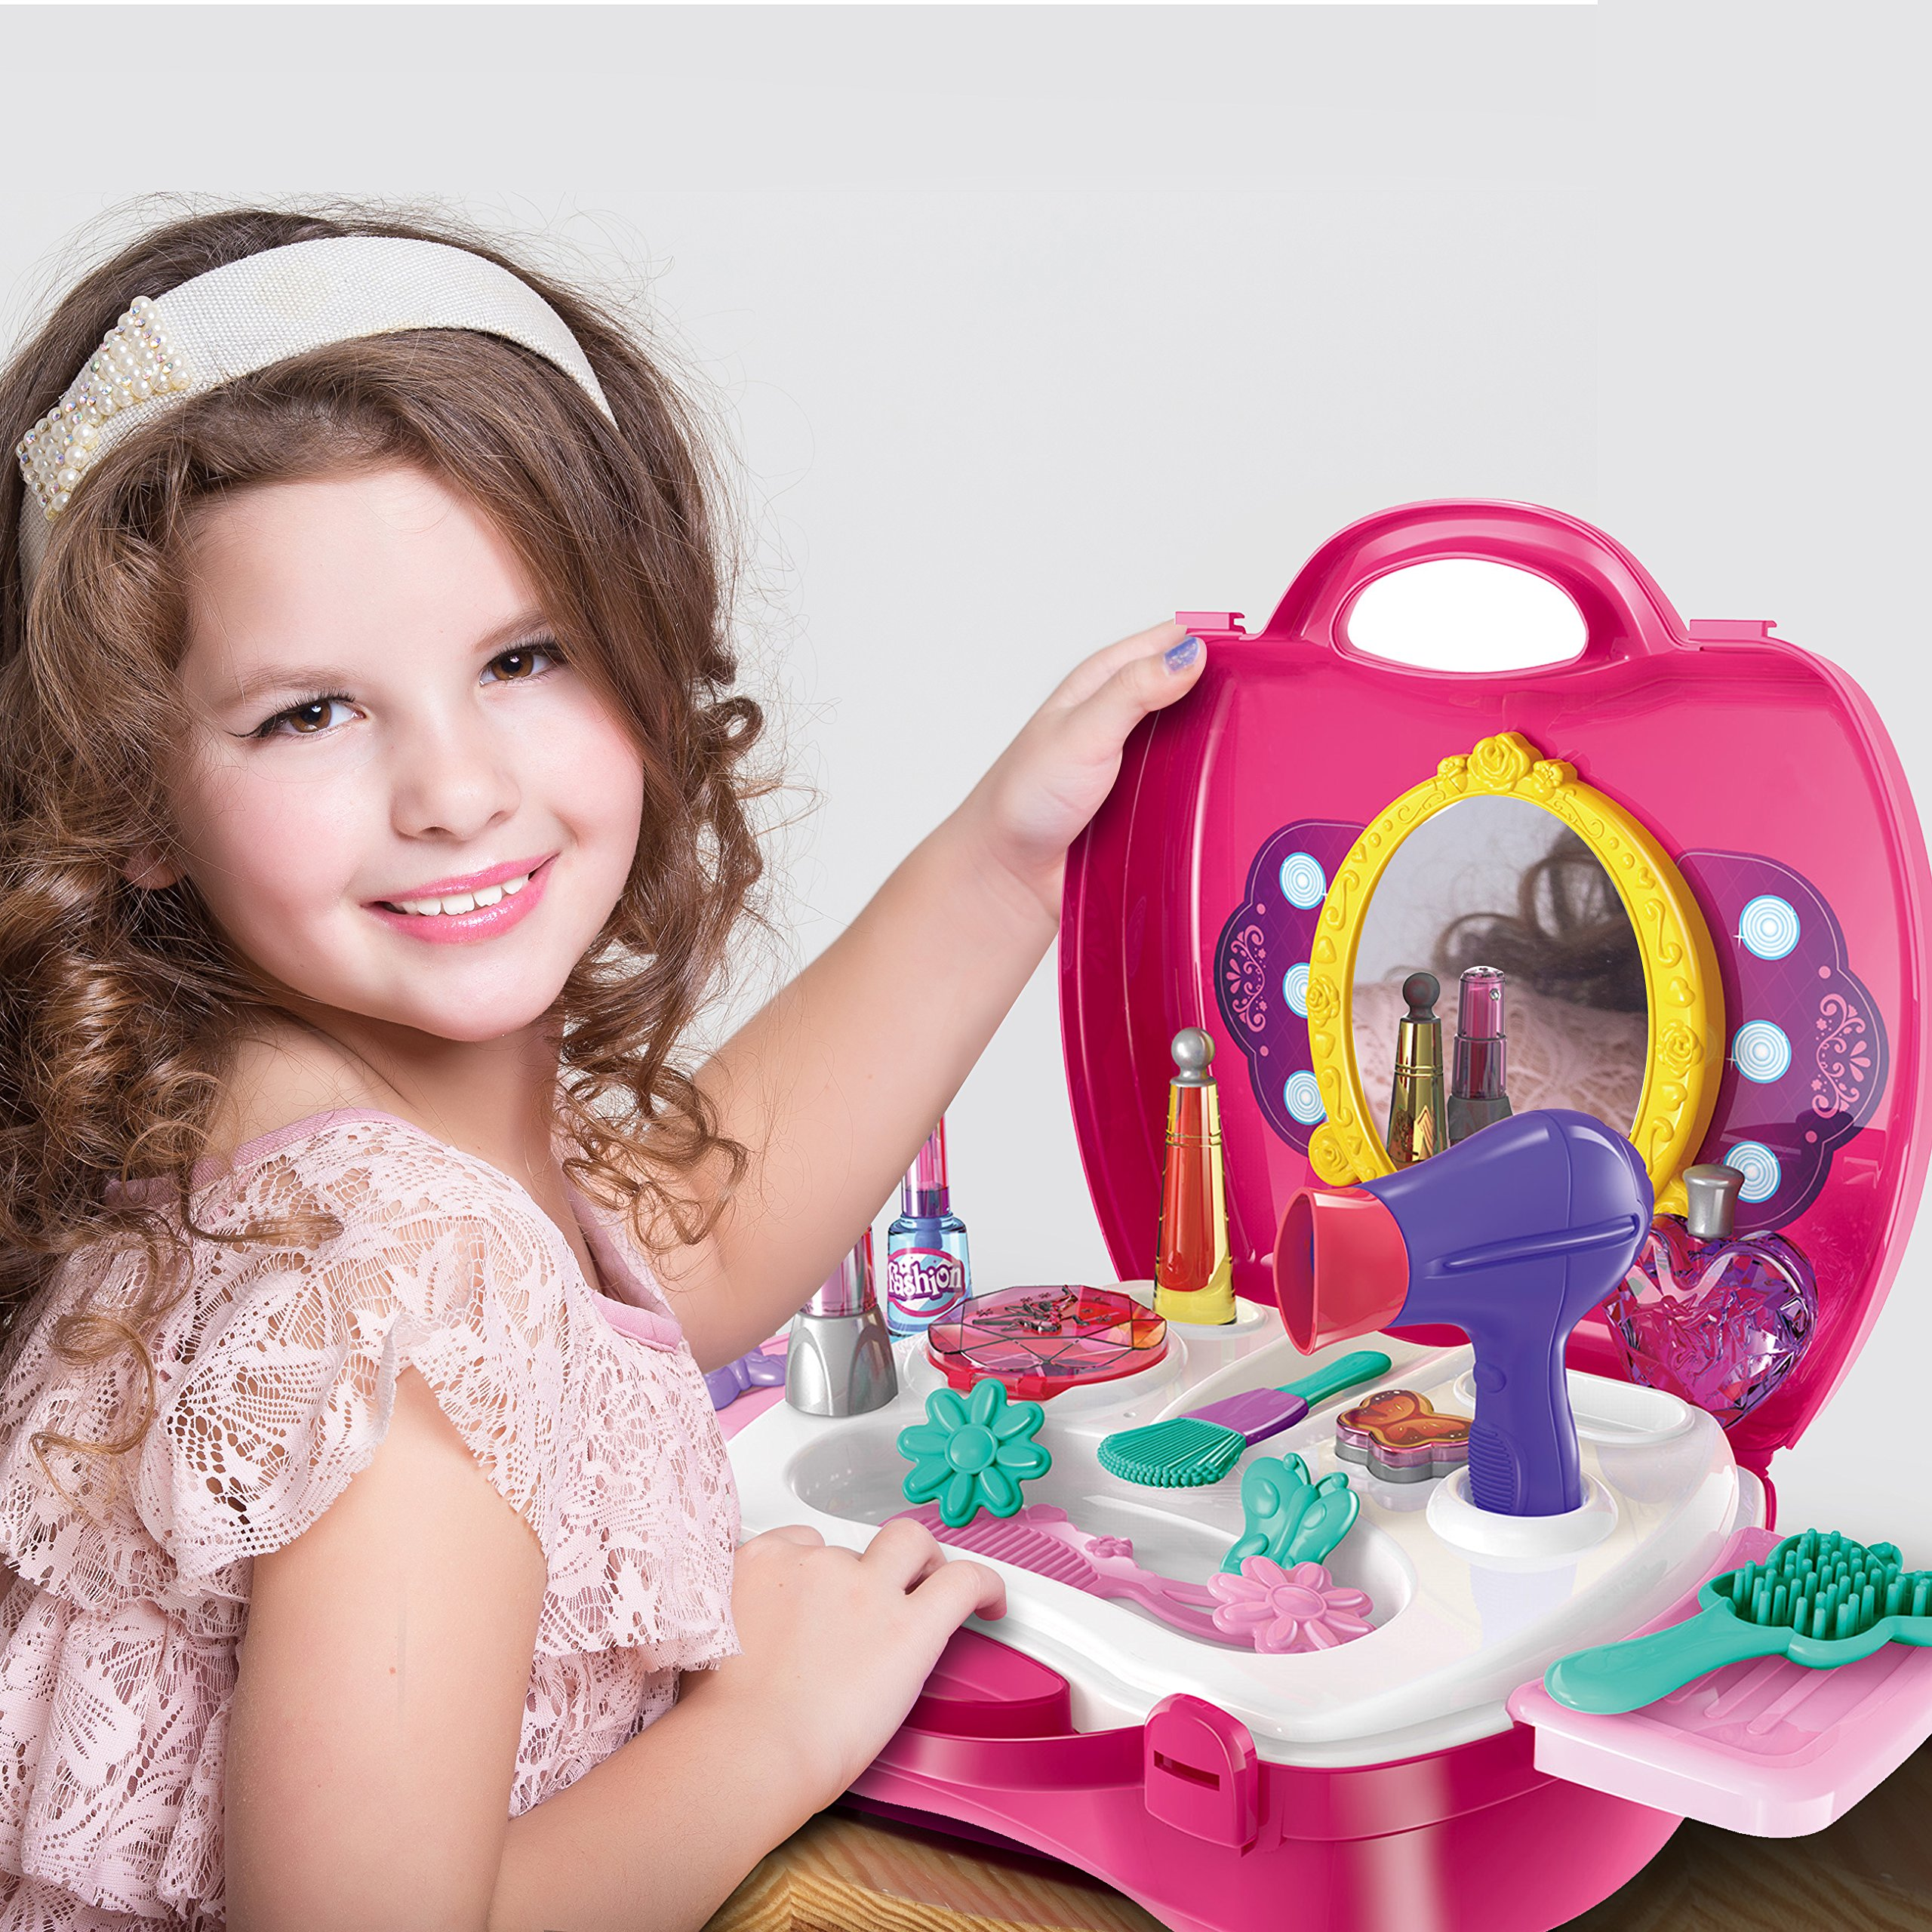 FASHION GIRLS MAKEUP SET - Little Girls Will Enjoy This Unique Cosmetic Case and Hair Style Kit!